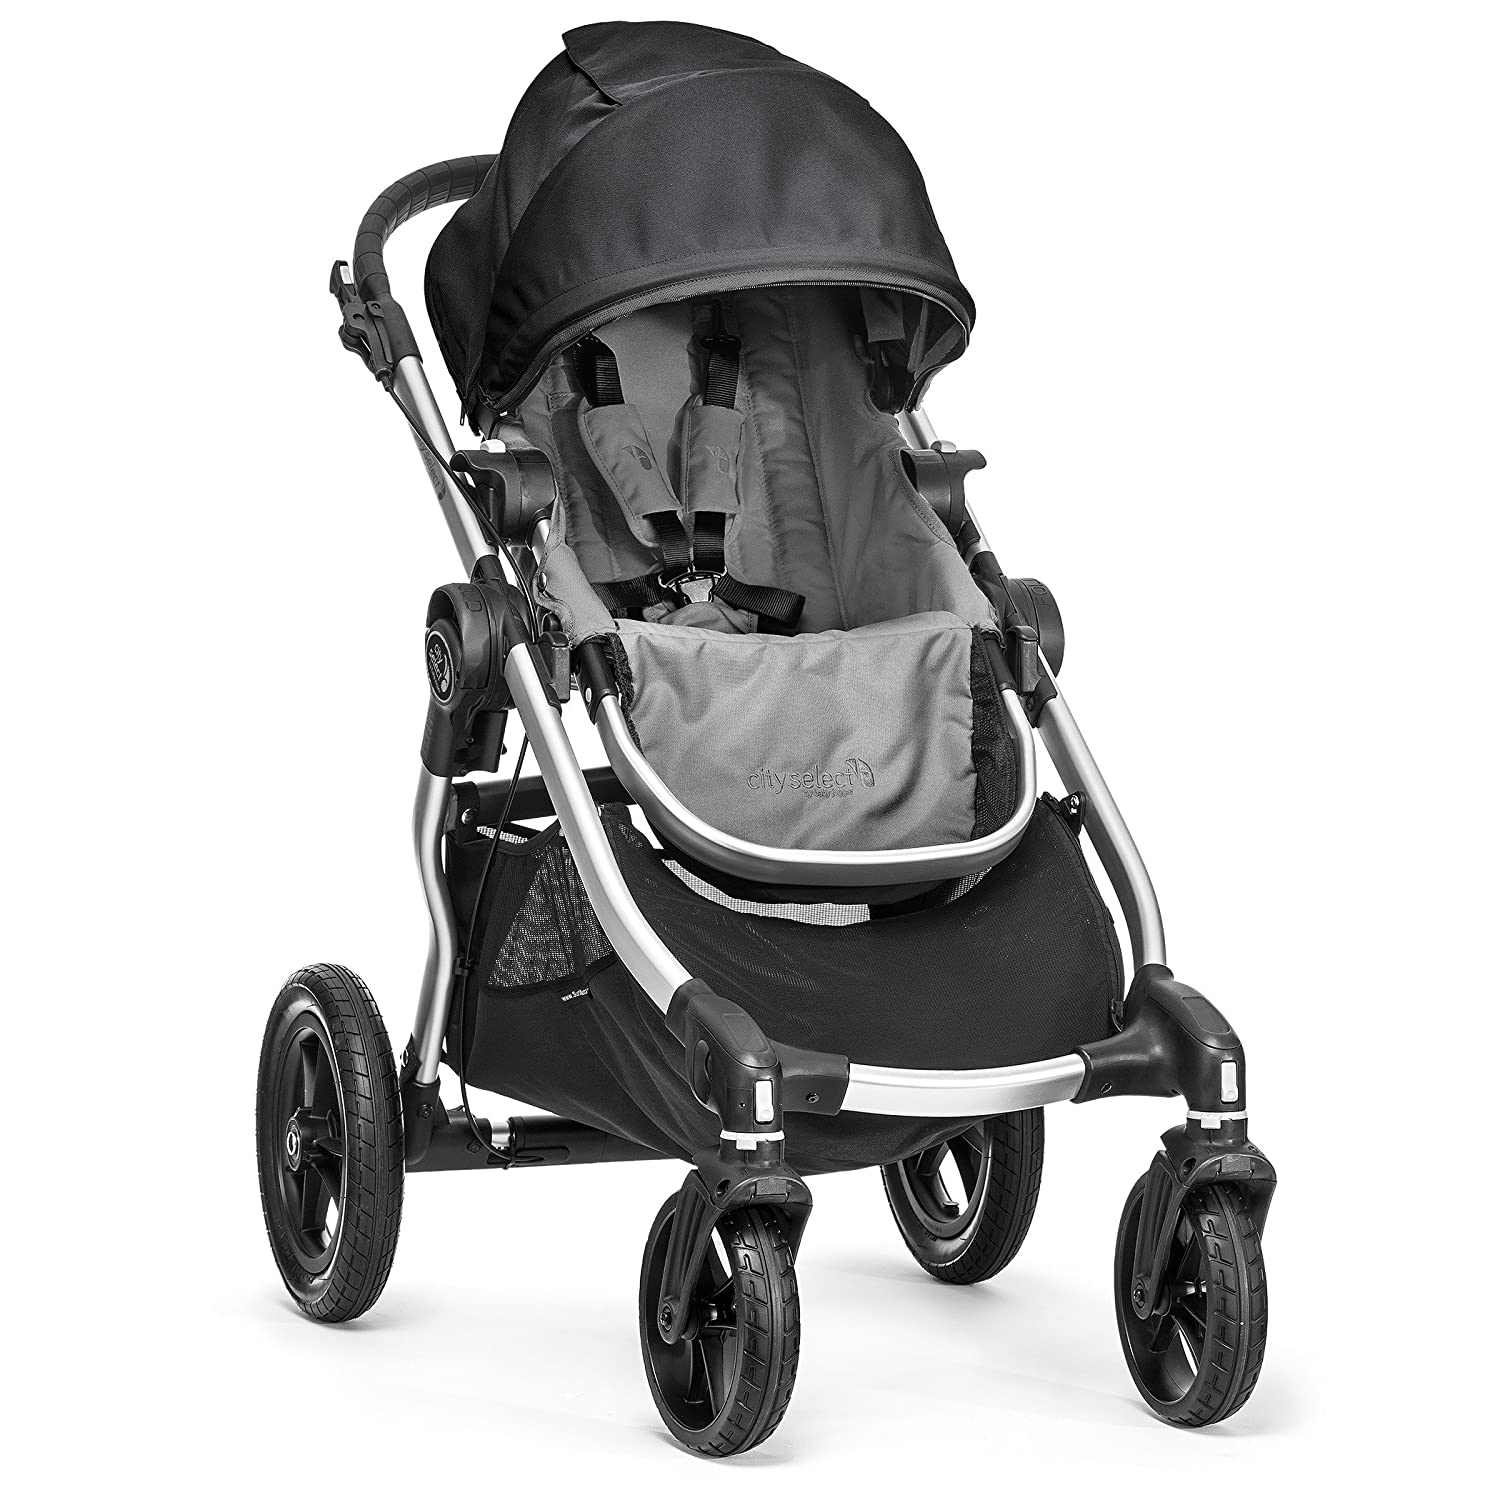 Baby Jogger City Select Stroller Baby Stroller with 16 Ways to Ride, Goes from Single to Double Stroller Quick Fold Stroller, Gray Black